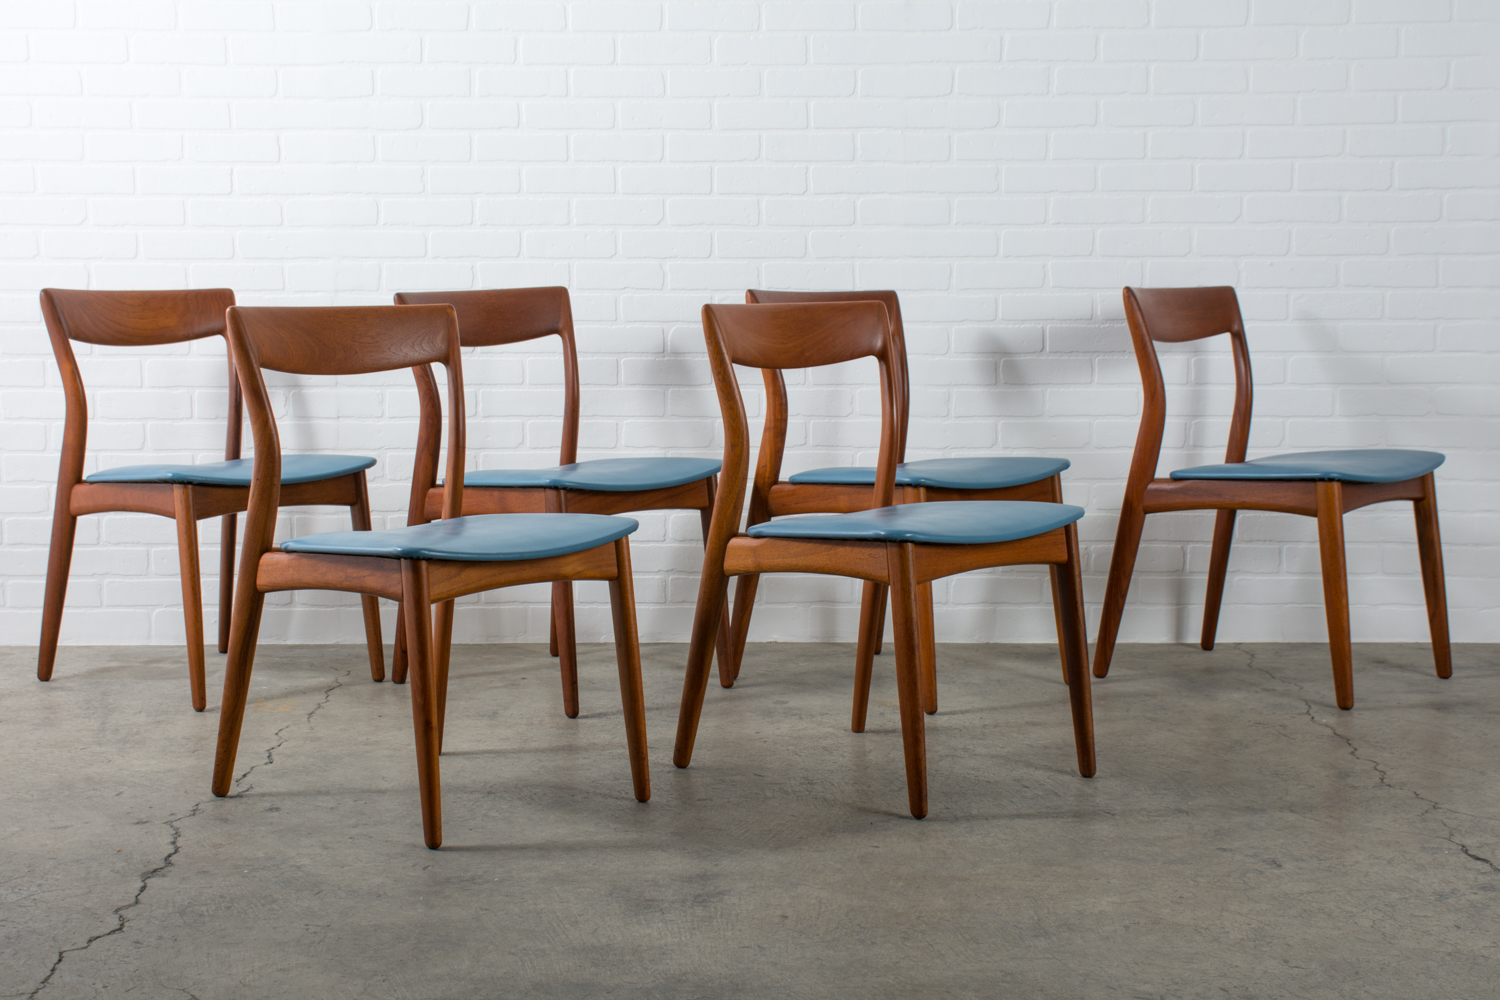 Astounding Six Mid Century Modern Teak Dining Chairs By Viborg Stolefabrik Denmark Mid Century Modern Finds Ncnpc Chair Design For Home Ncnpcorg